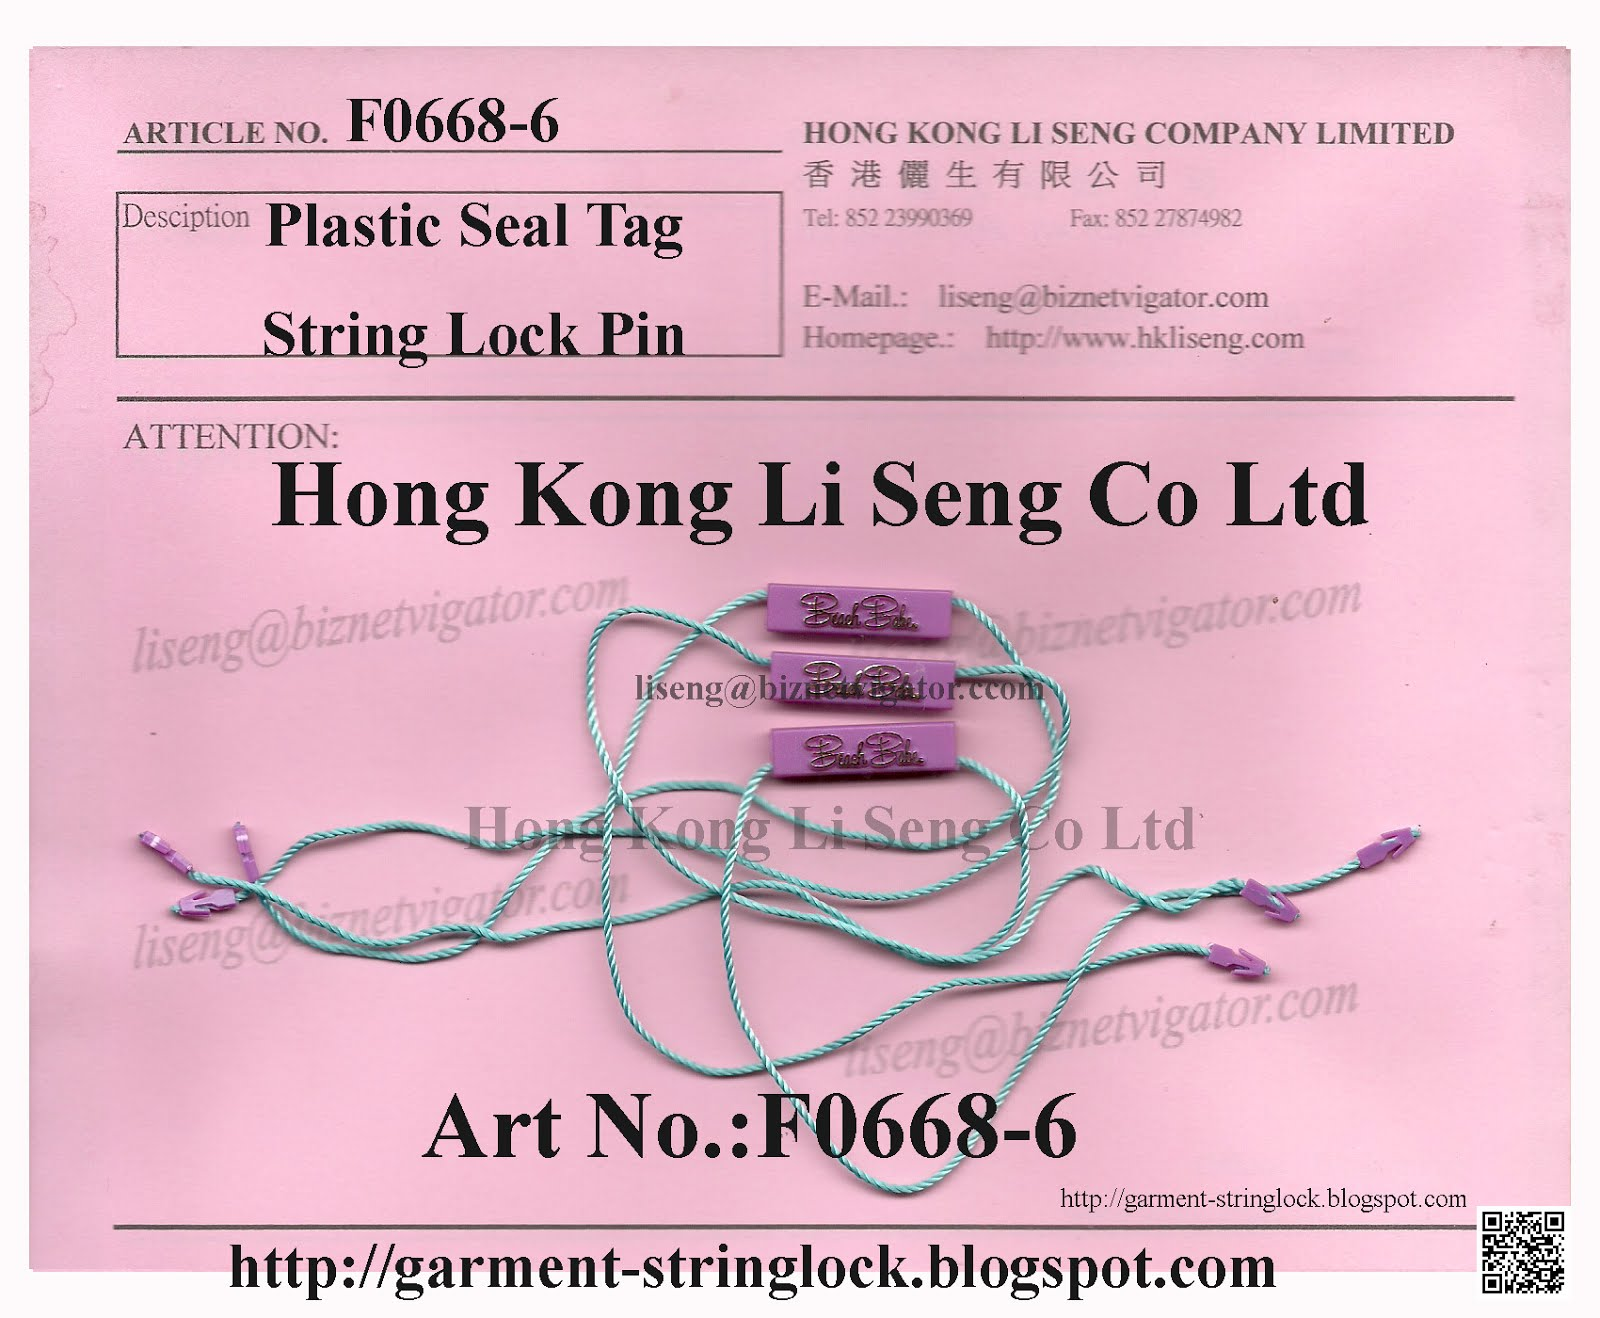 Your Own Plastic Seal Tag Brand Name Trademark String Lock Pin